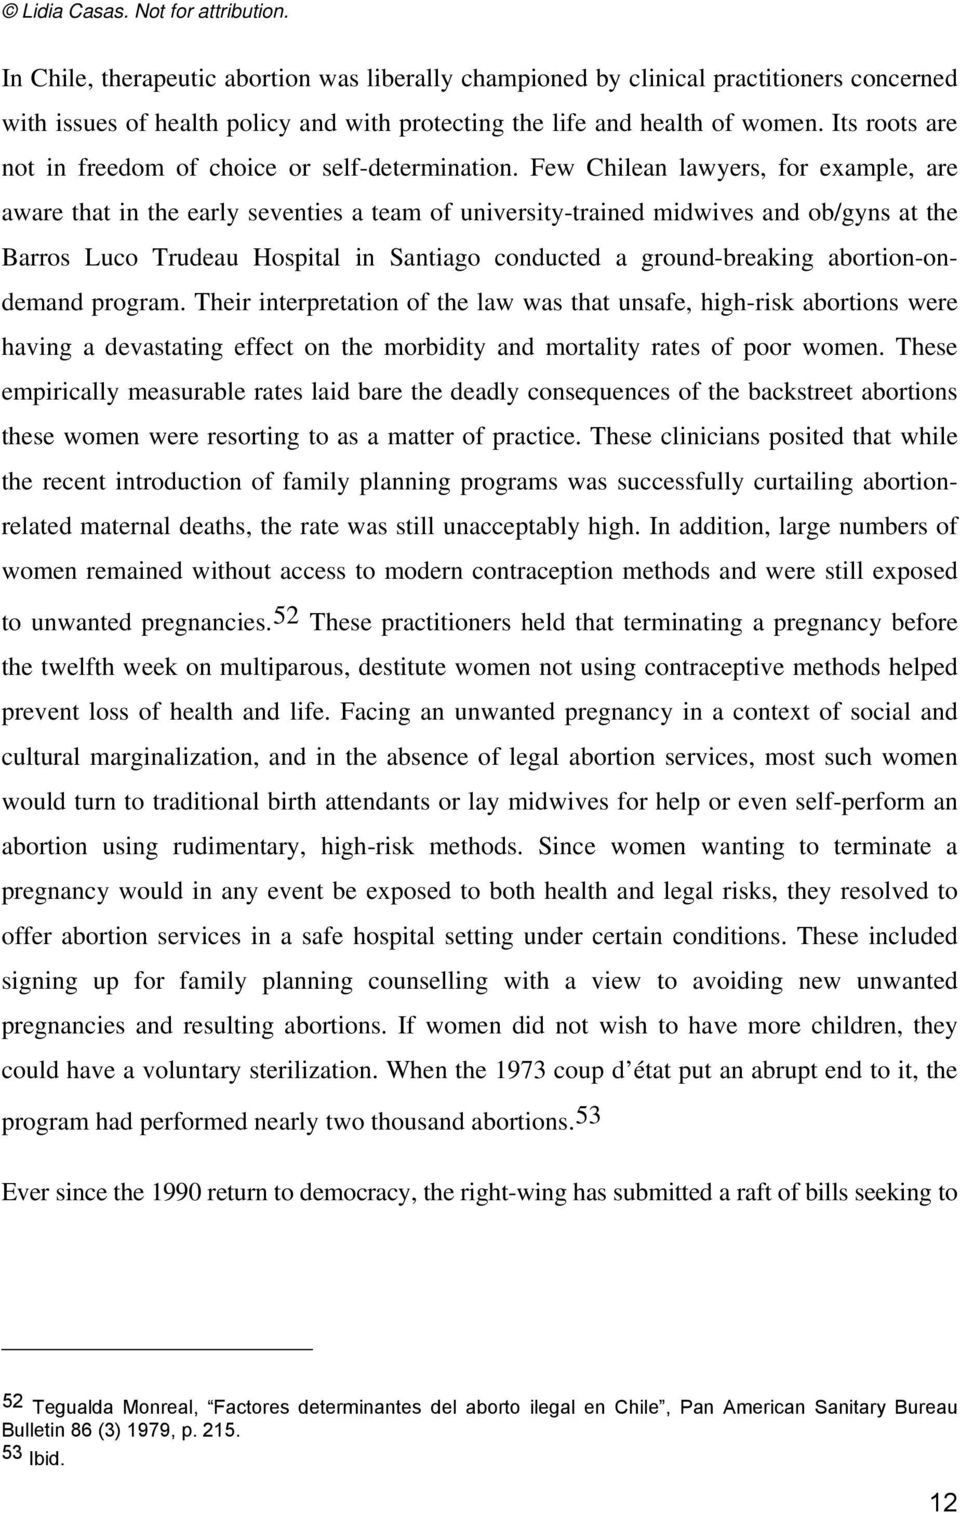 Few Chilean lawyers, for example, are aware that in the early seventies a team of university-trained midwives and ob/gyns at the Barros Luco Trudeau Hospital in Santiago conducted a ground-breaking